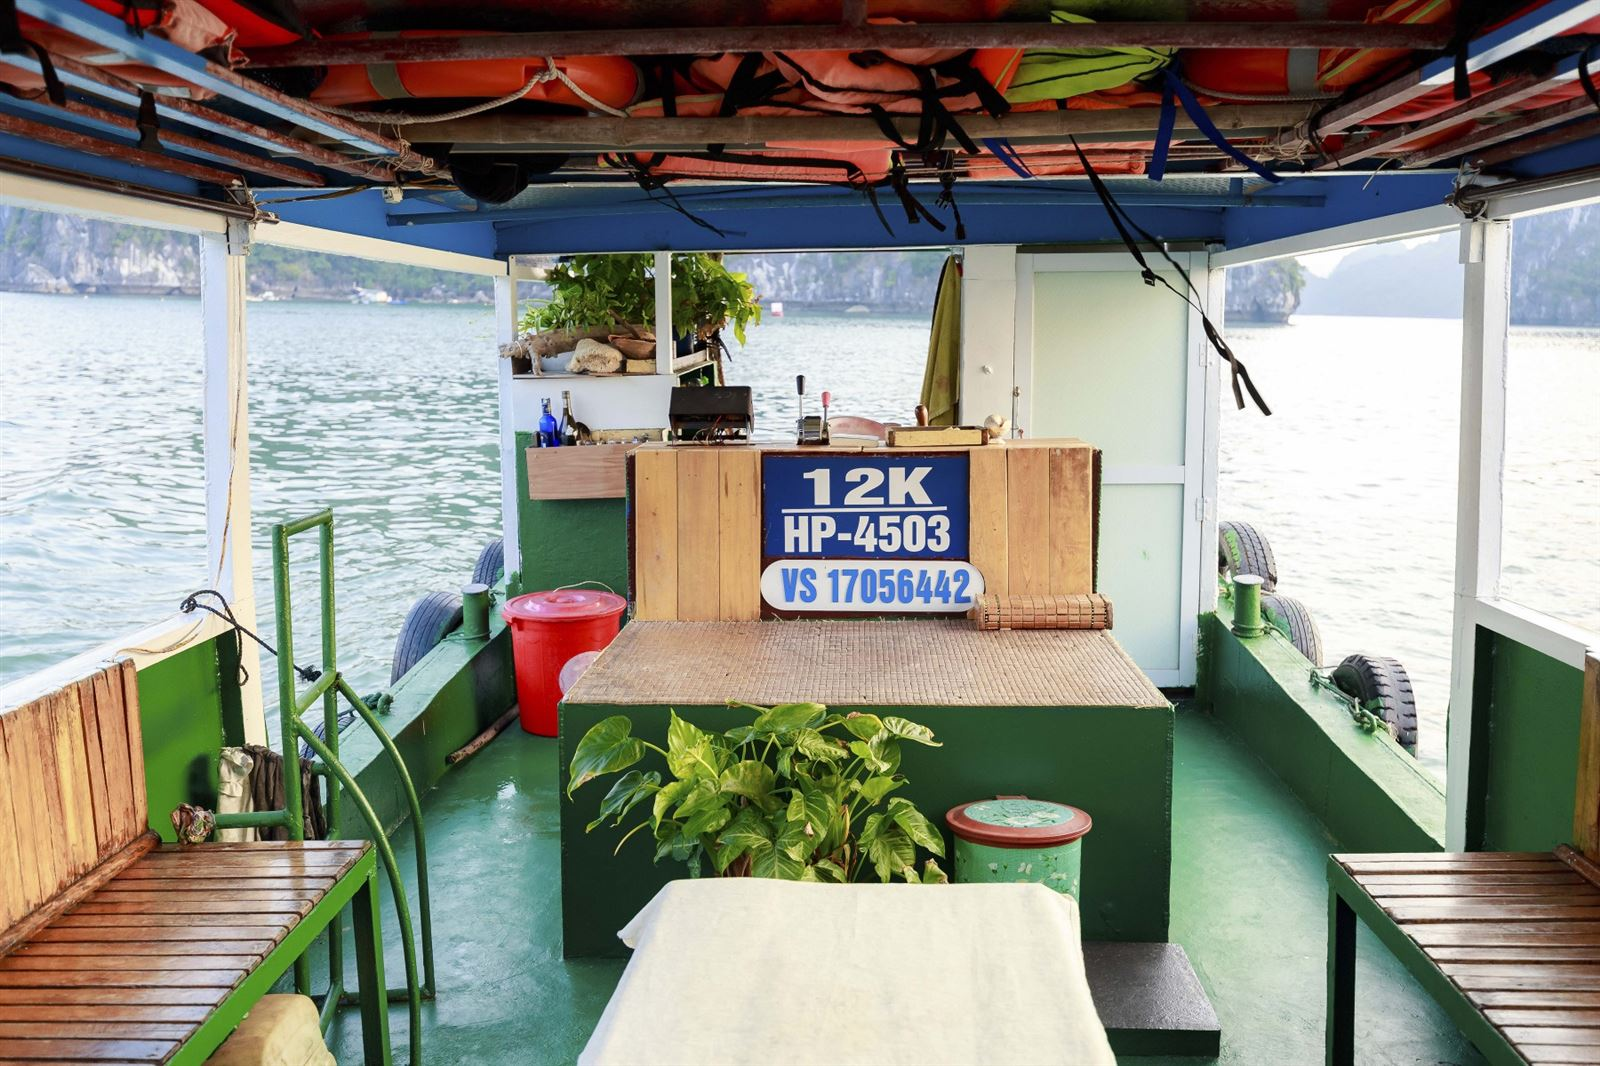 suttle boats furnitures